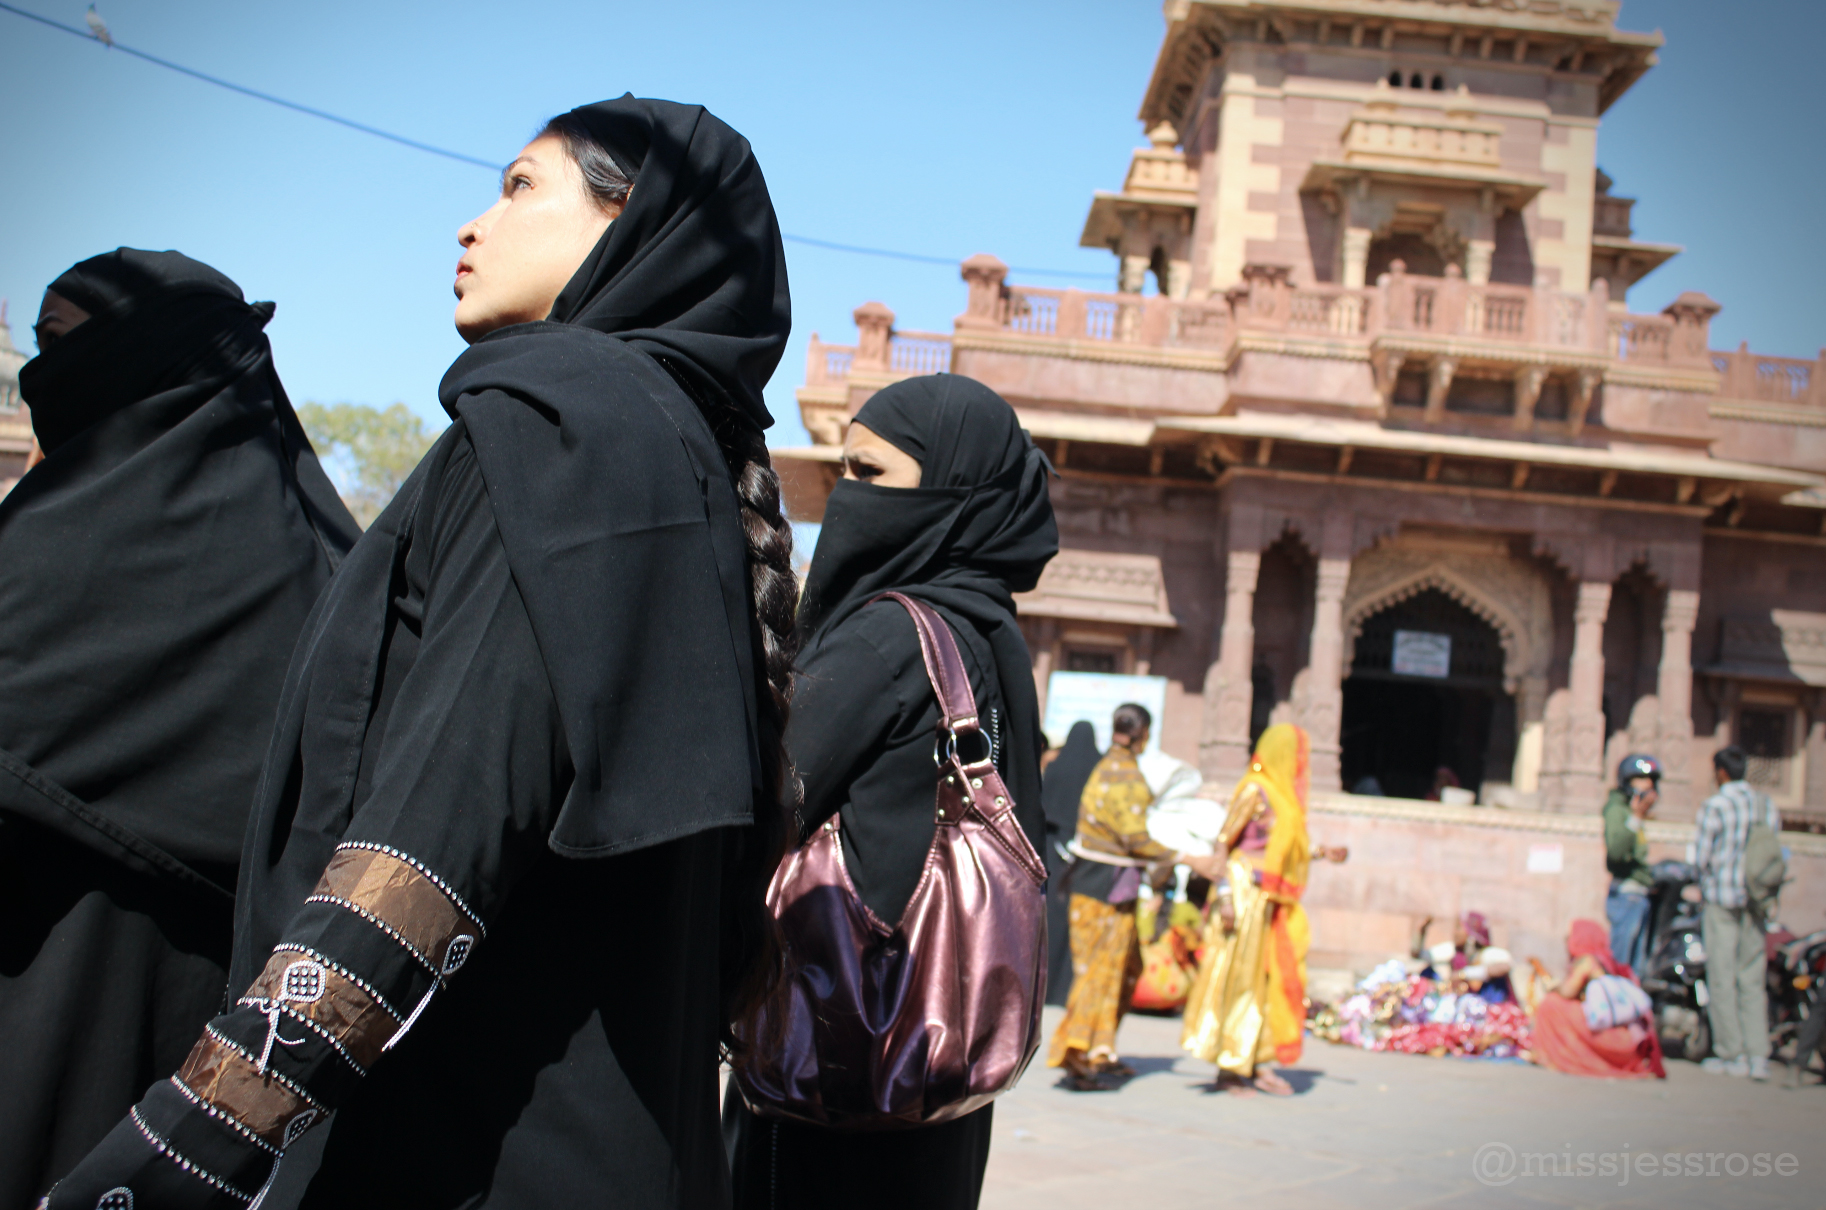 While India as a whole is primarily Hindu, many  Rajasthani Muslims live in Jodhpur.